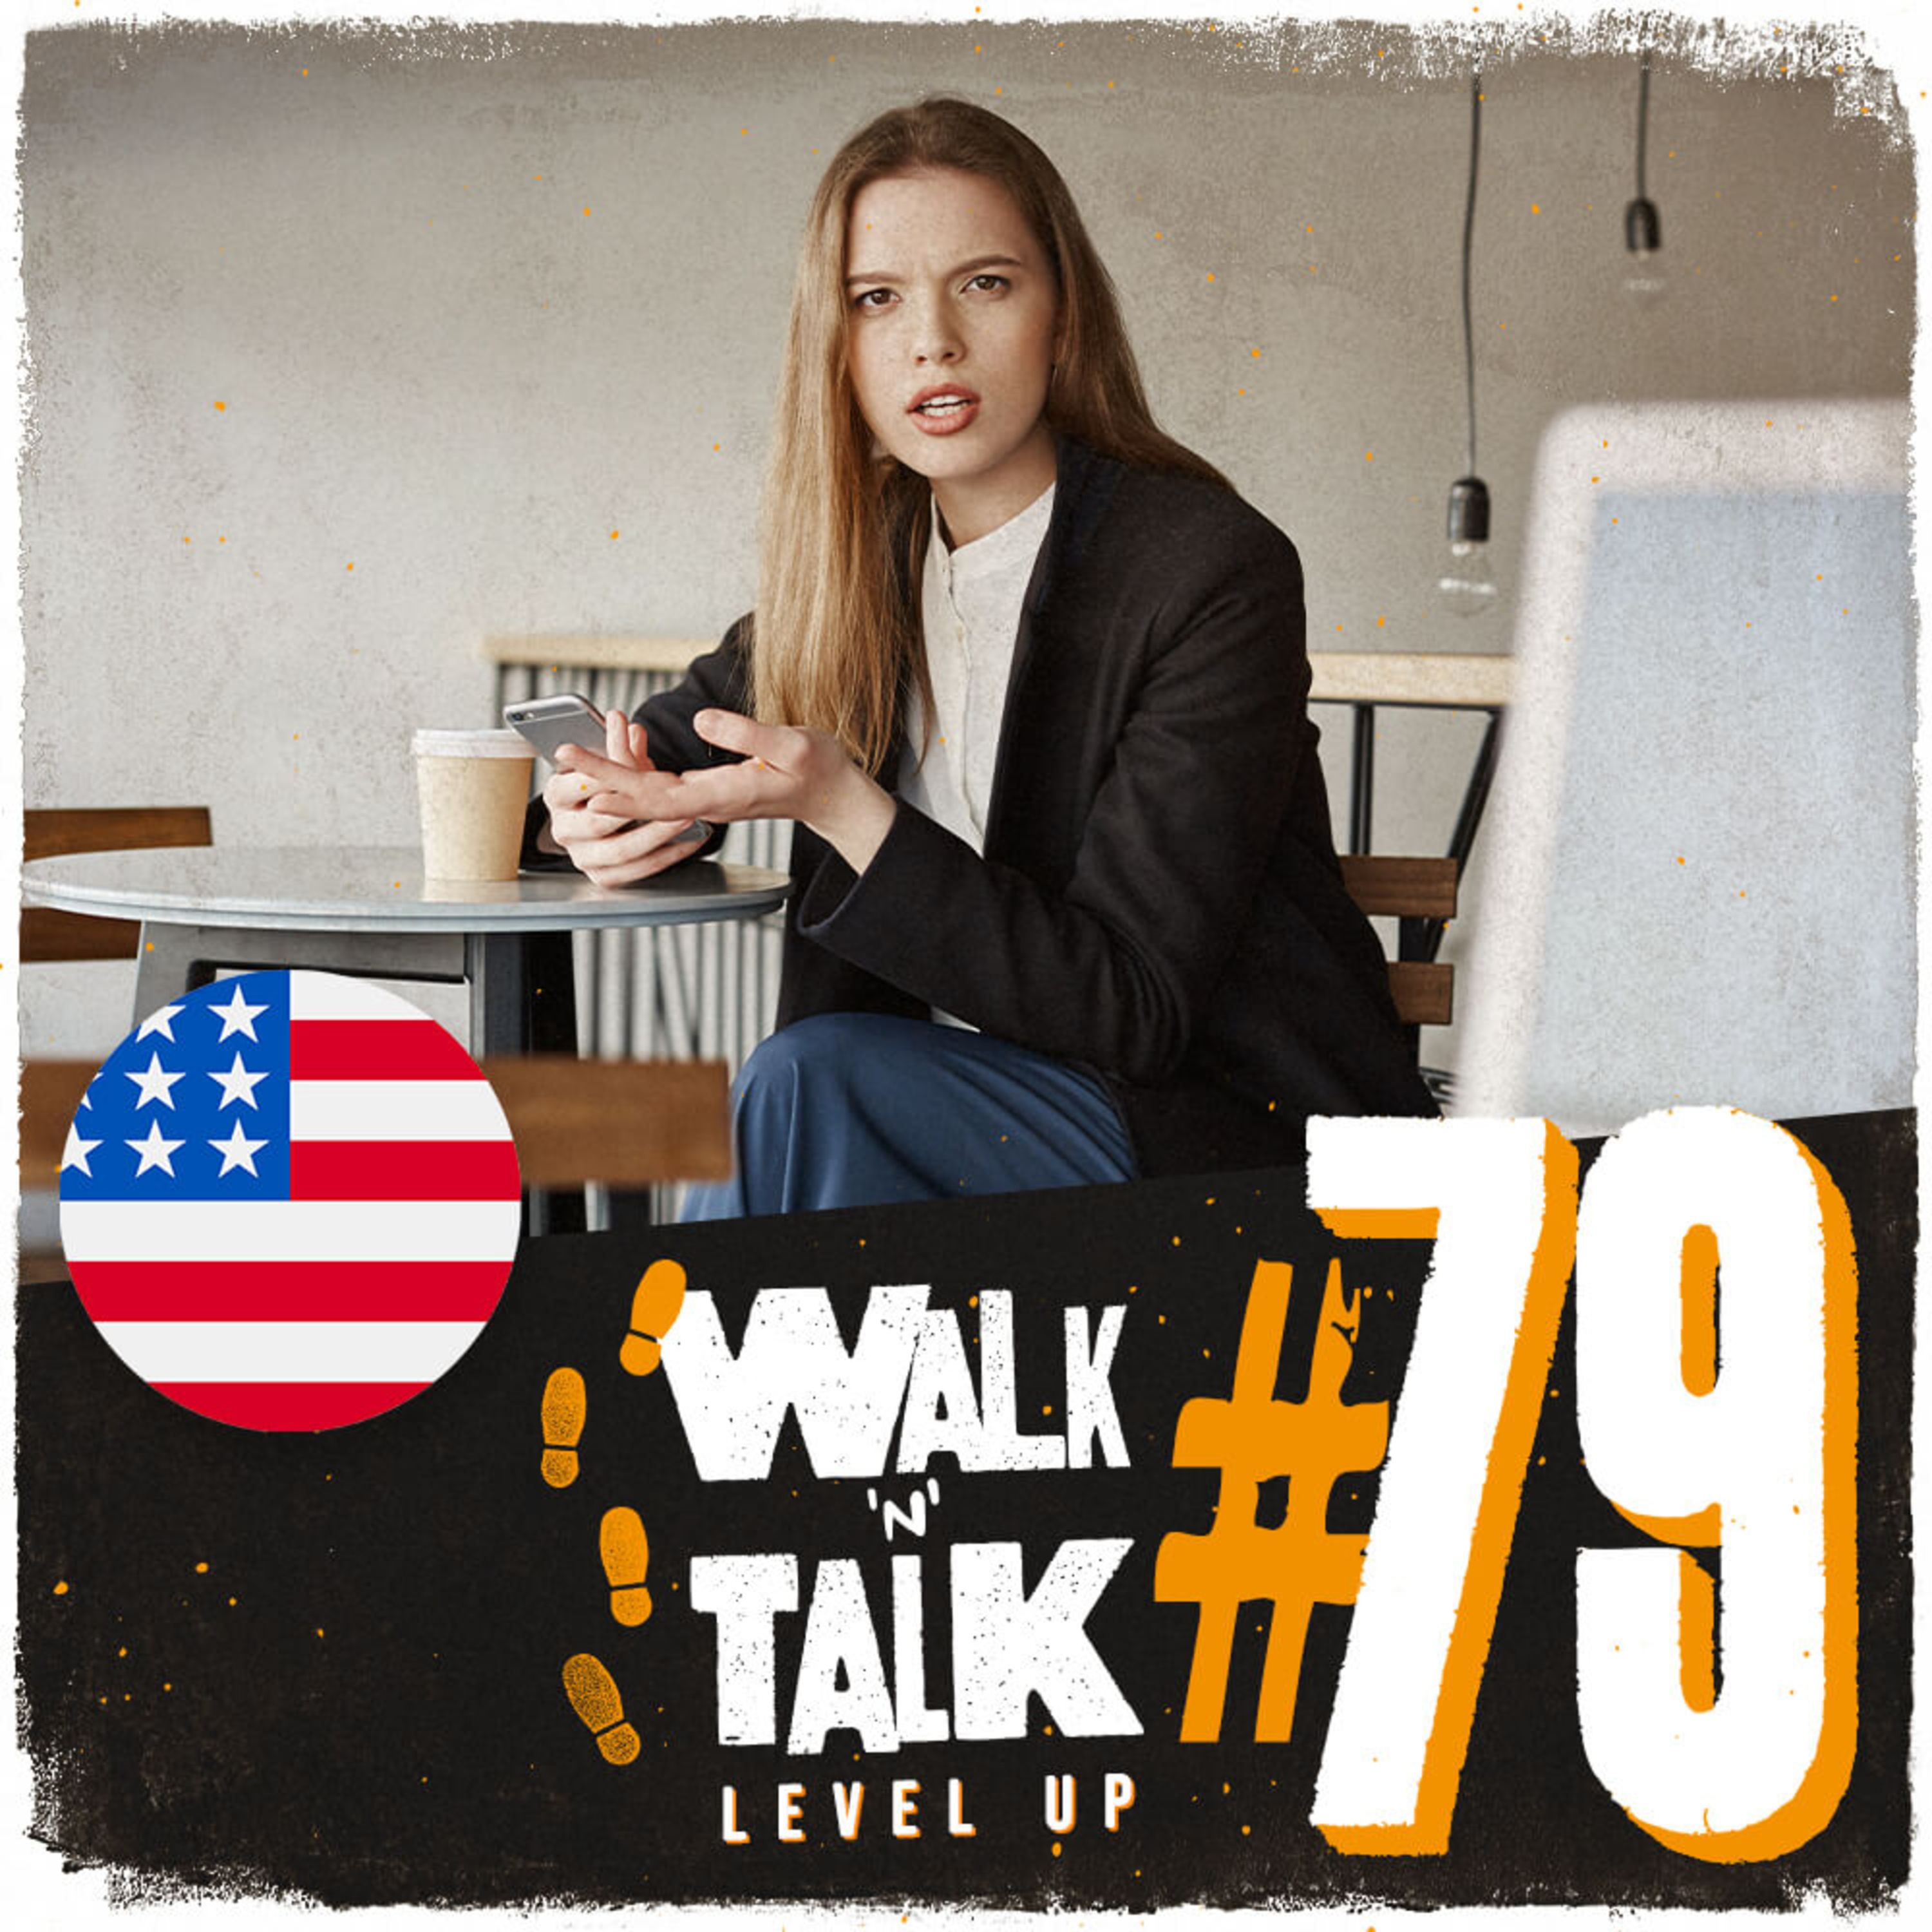 Walk 'n' Talk Level Up #79 - You're driving me crazy!